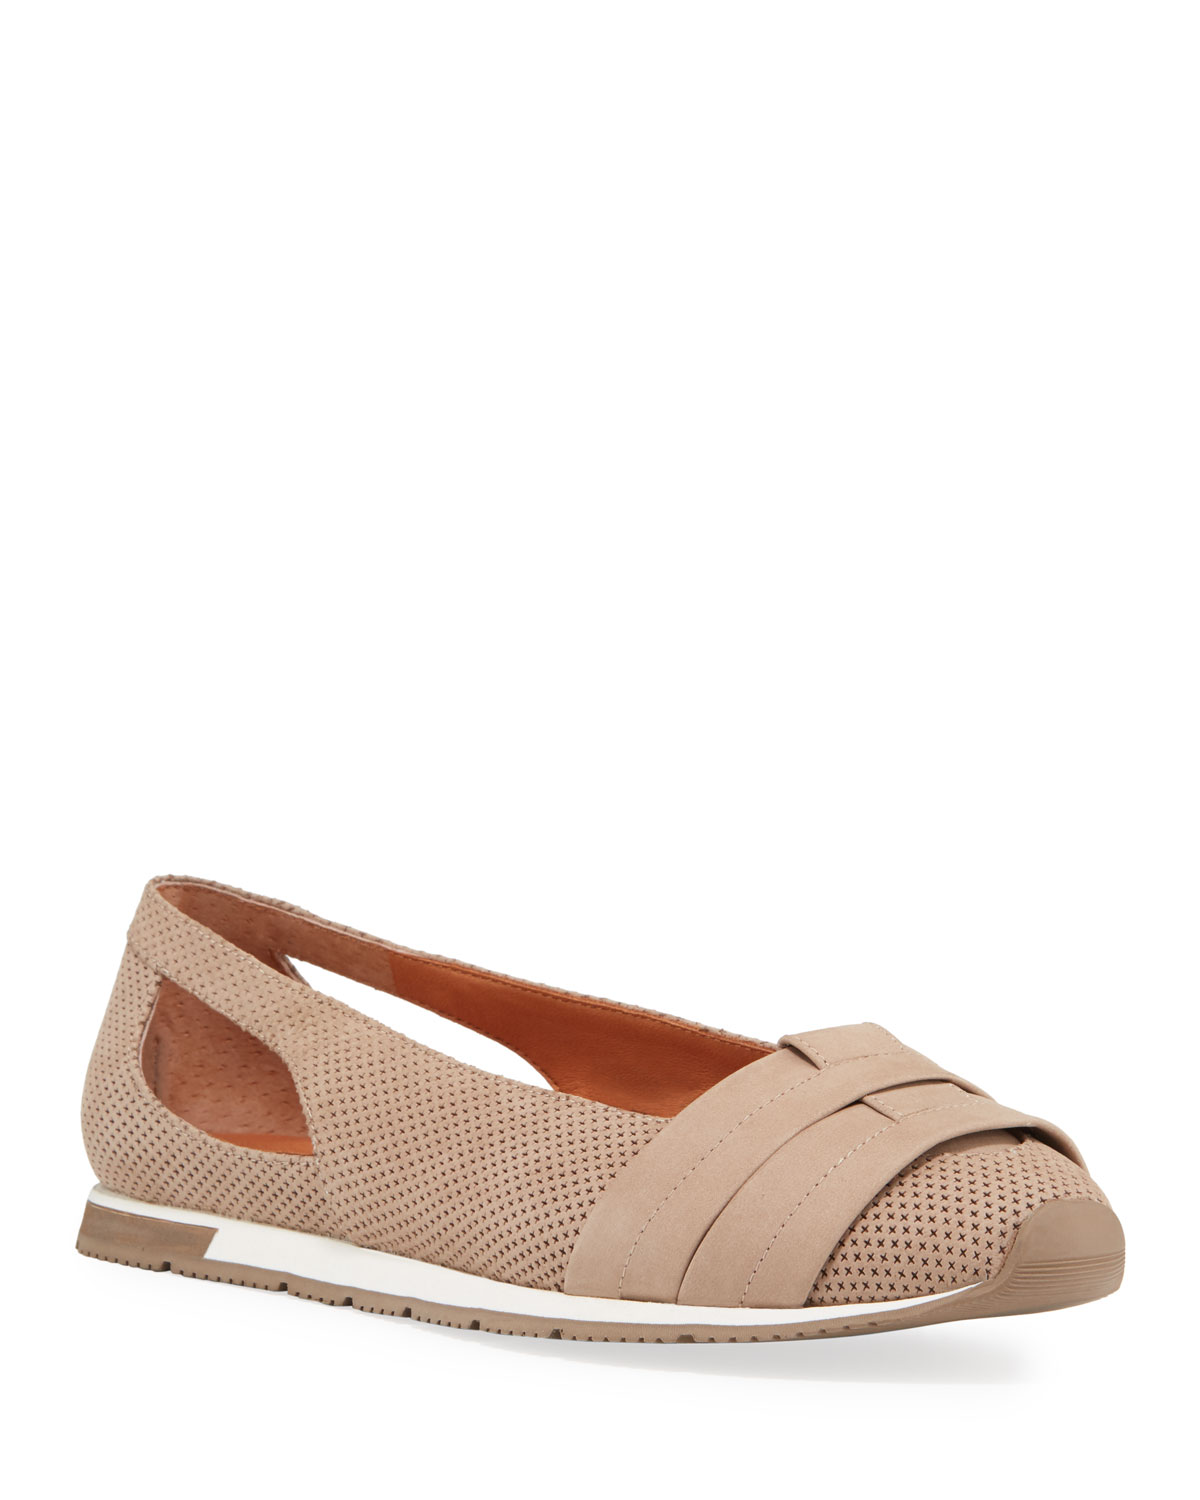 Luca Cutout Perforated Leather Comfort Flats